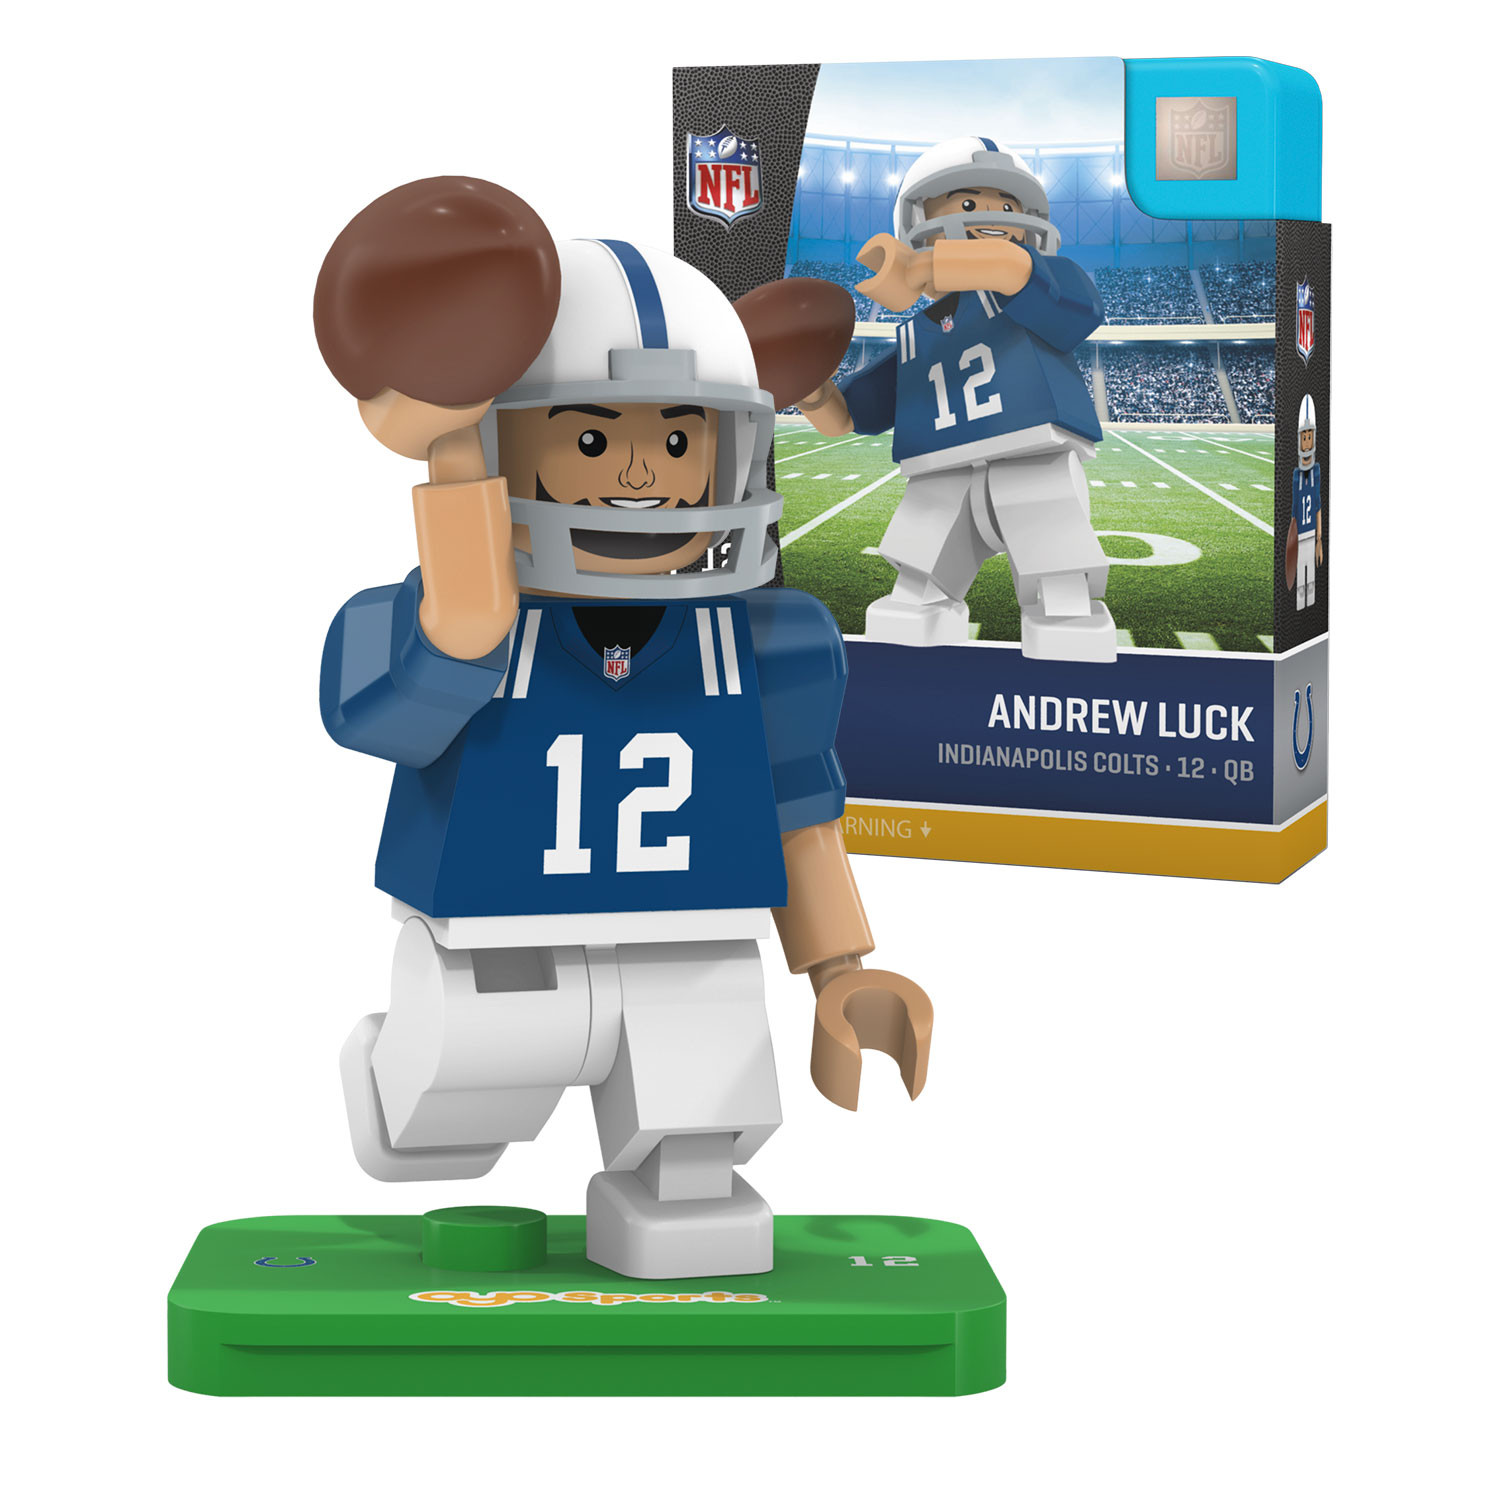 Andrew Luck Indianapolis Colts Official NFL Limited Edition Minifigure by Oyo 061634